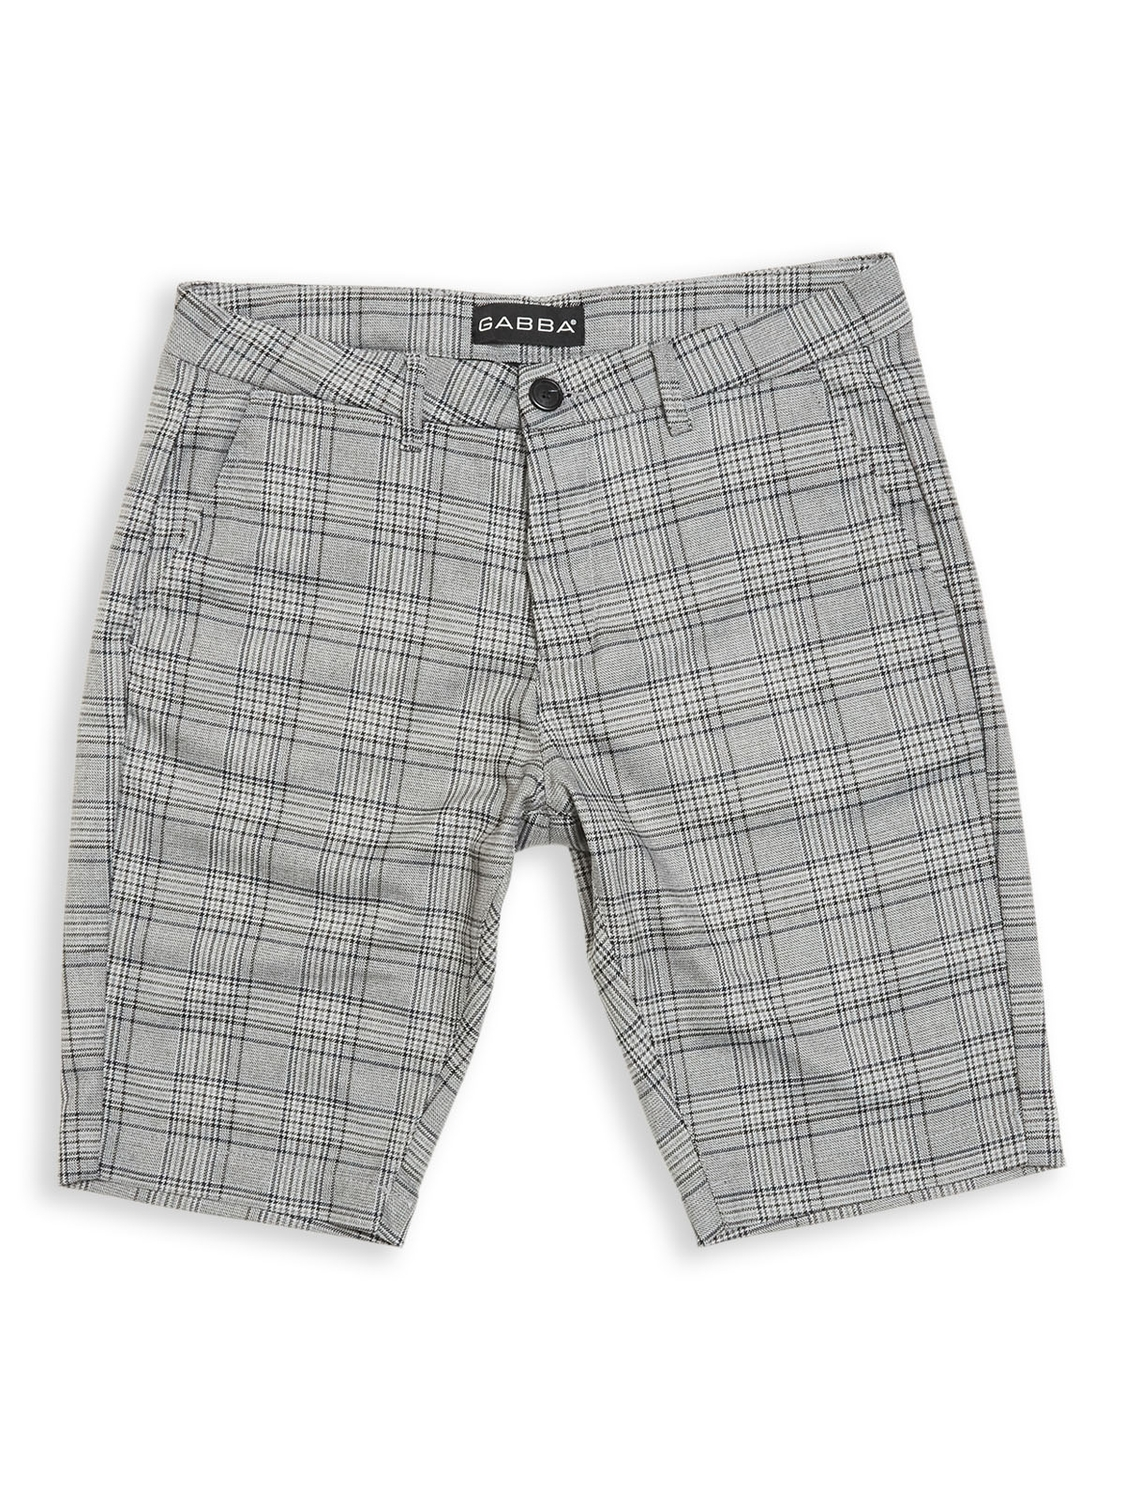 GABBA Check Shorts | GATE 36 Hobro